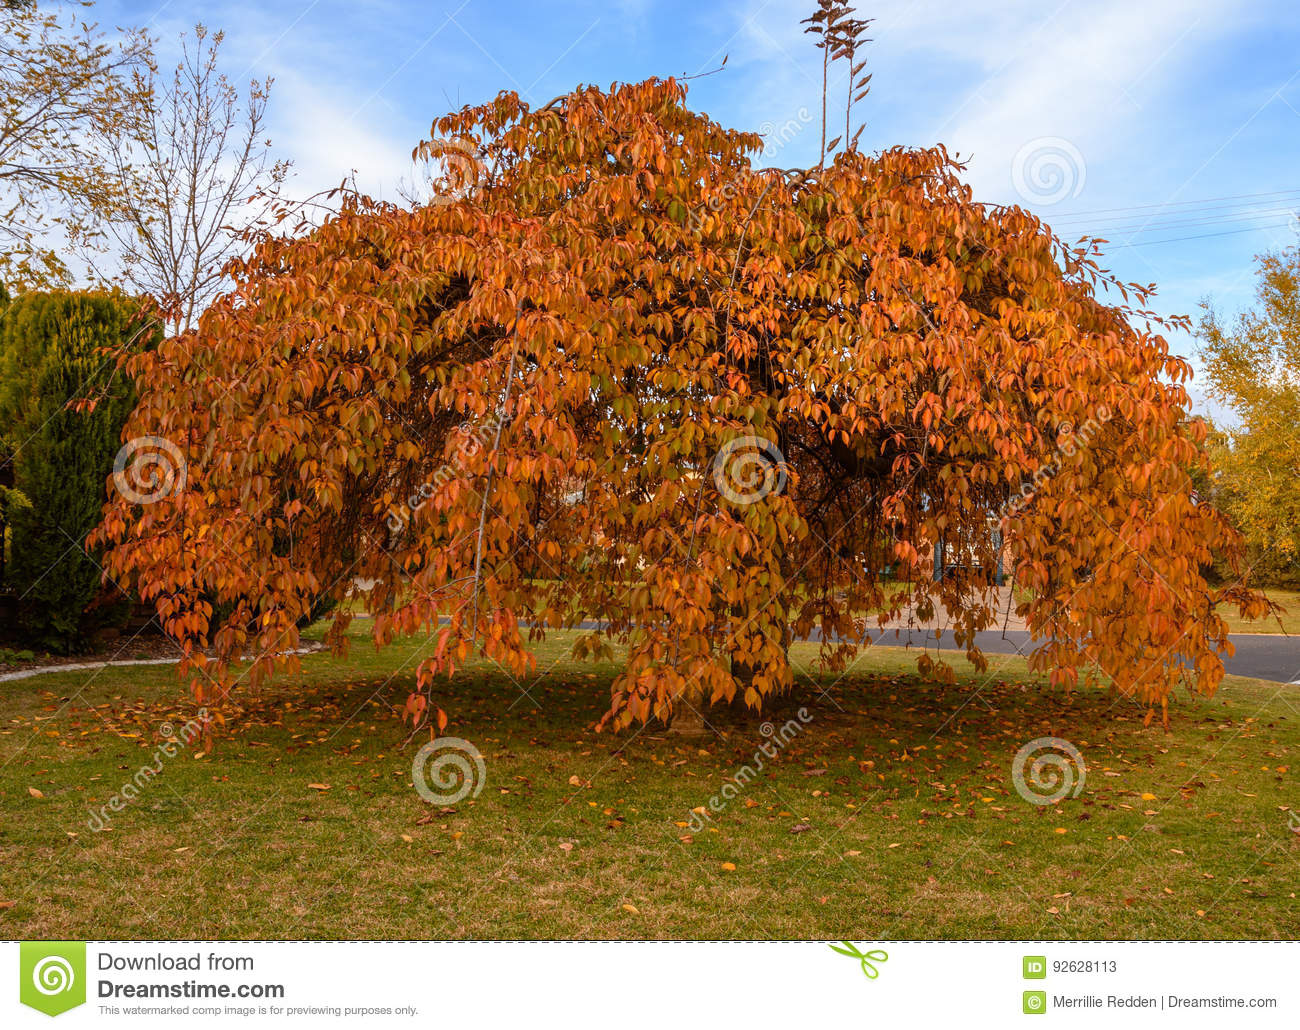 Weeping Cherry Tree in Autumn